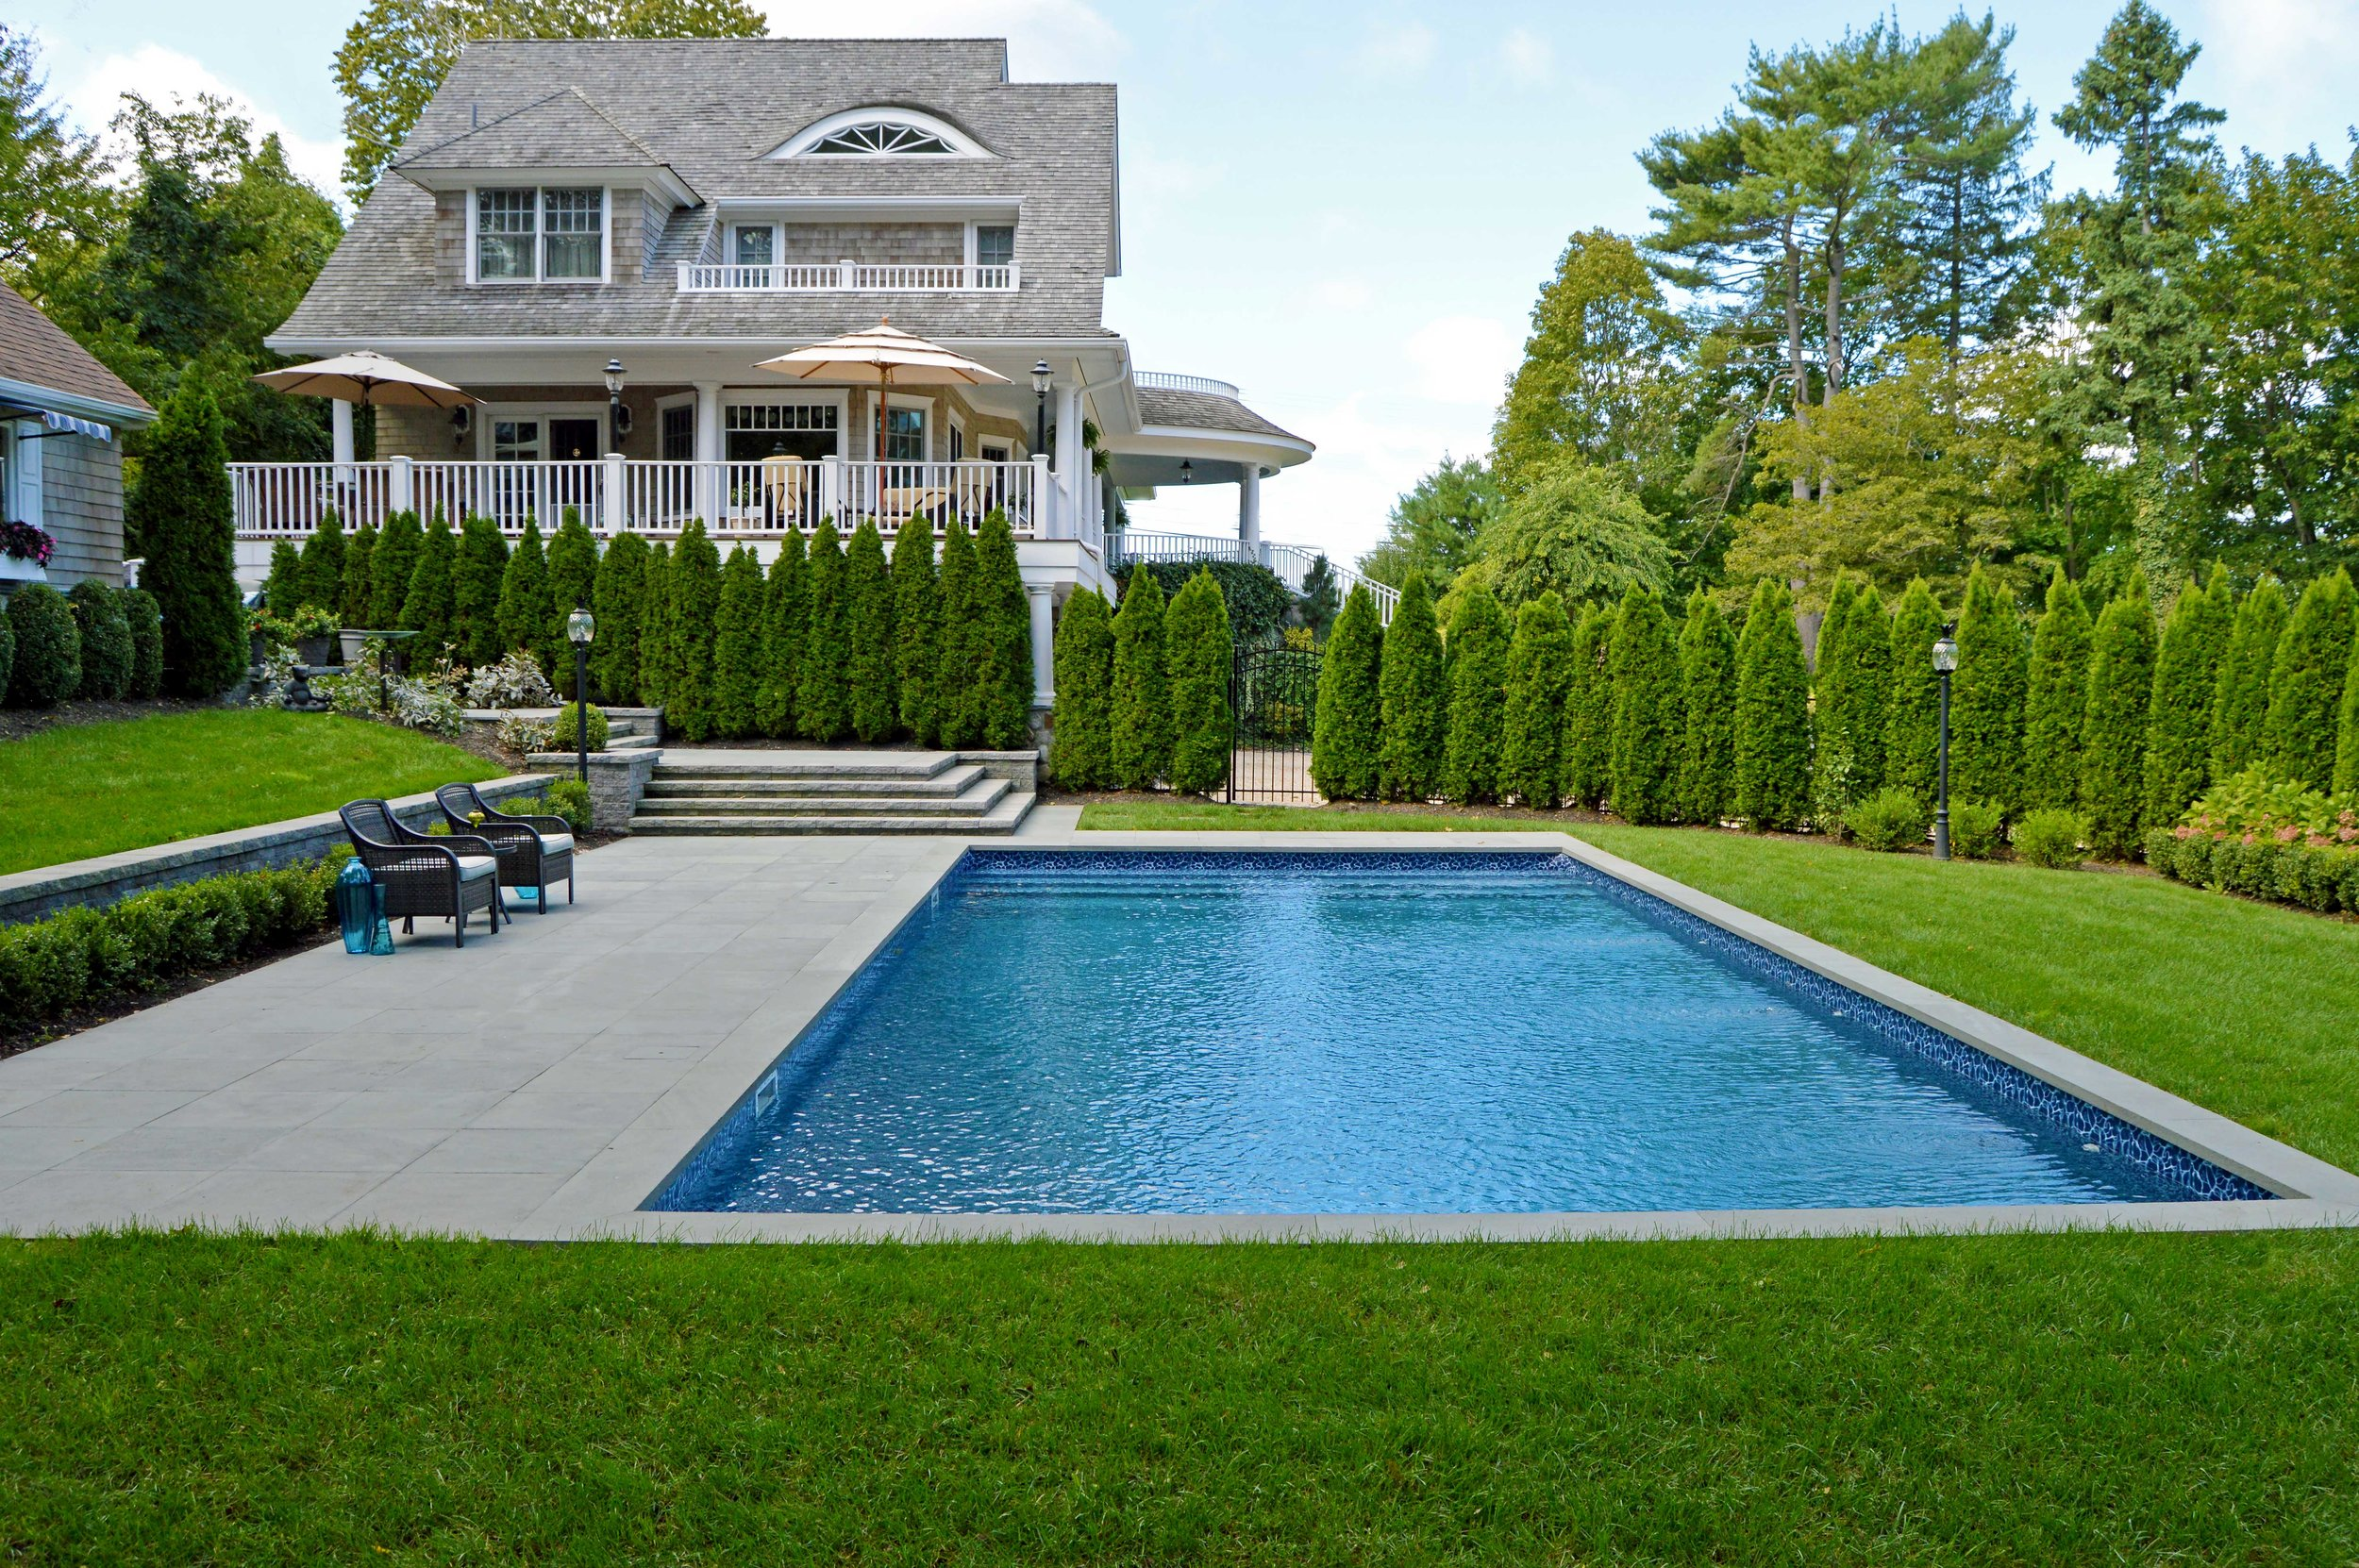 Northport, NY modern patio and swimming pool hamptons style